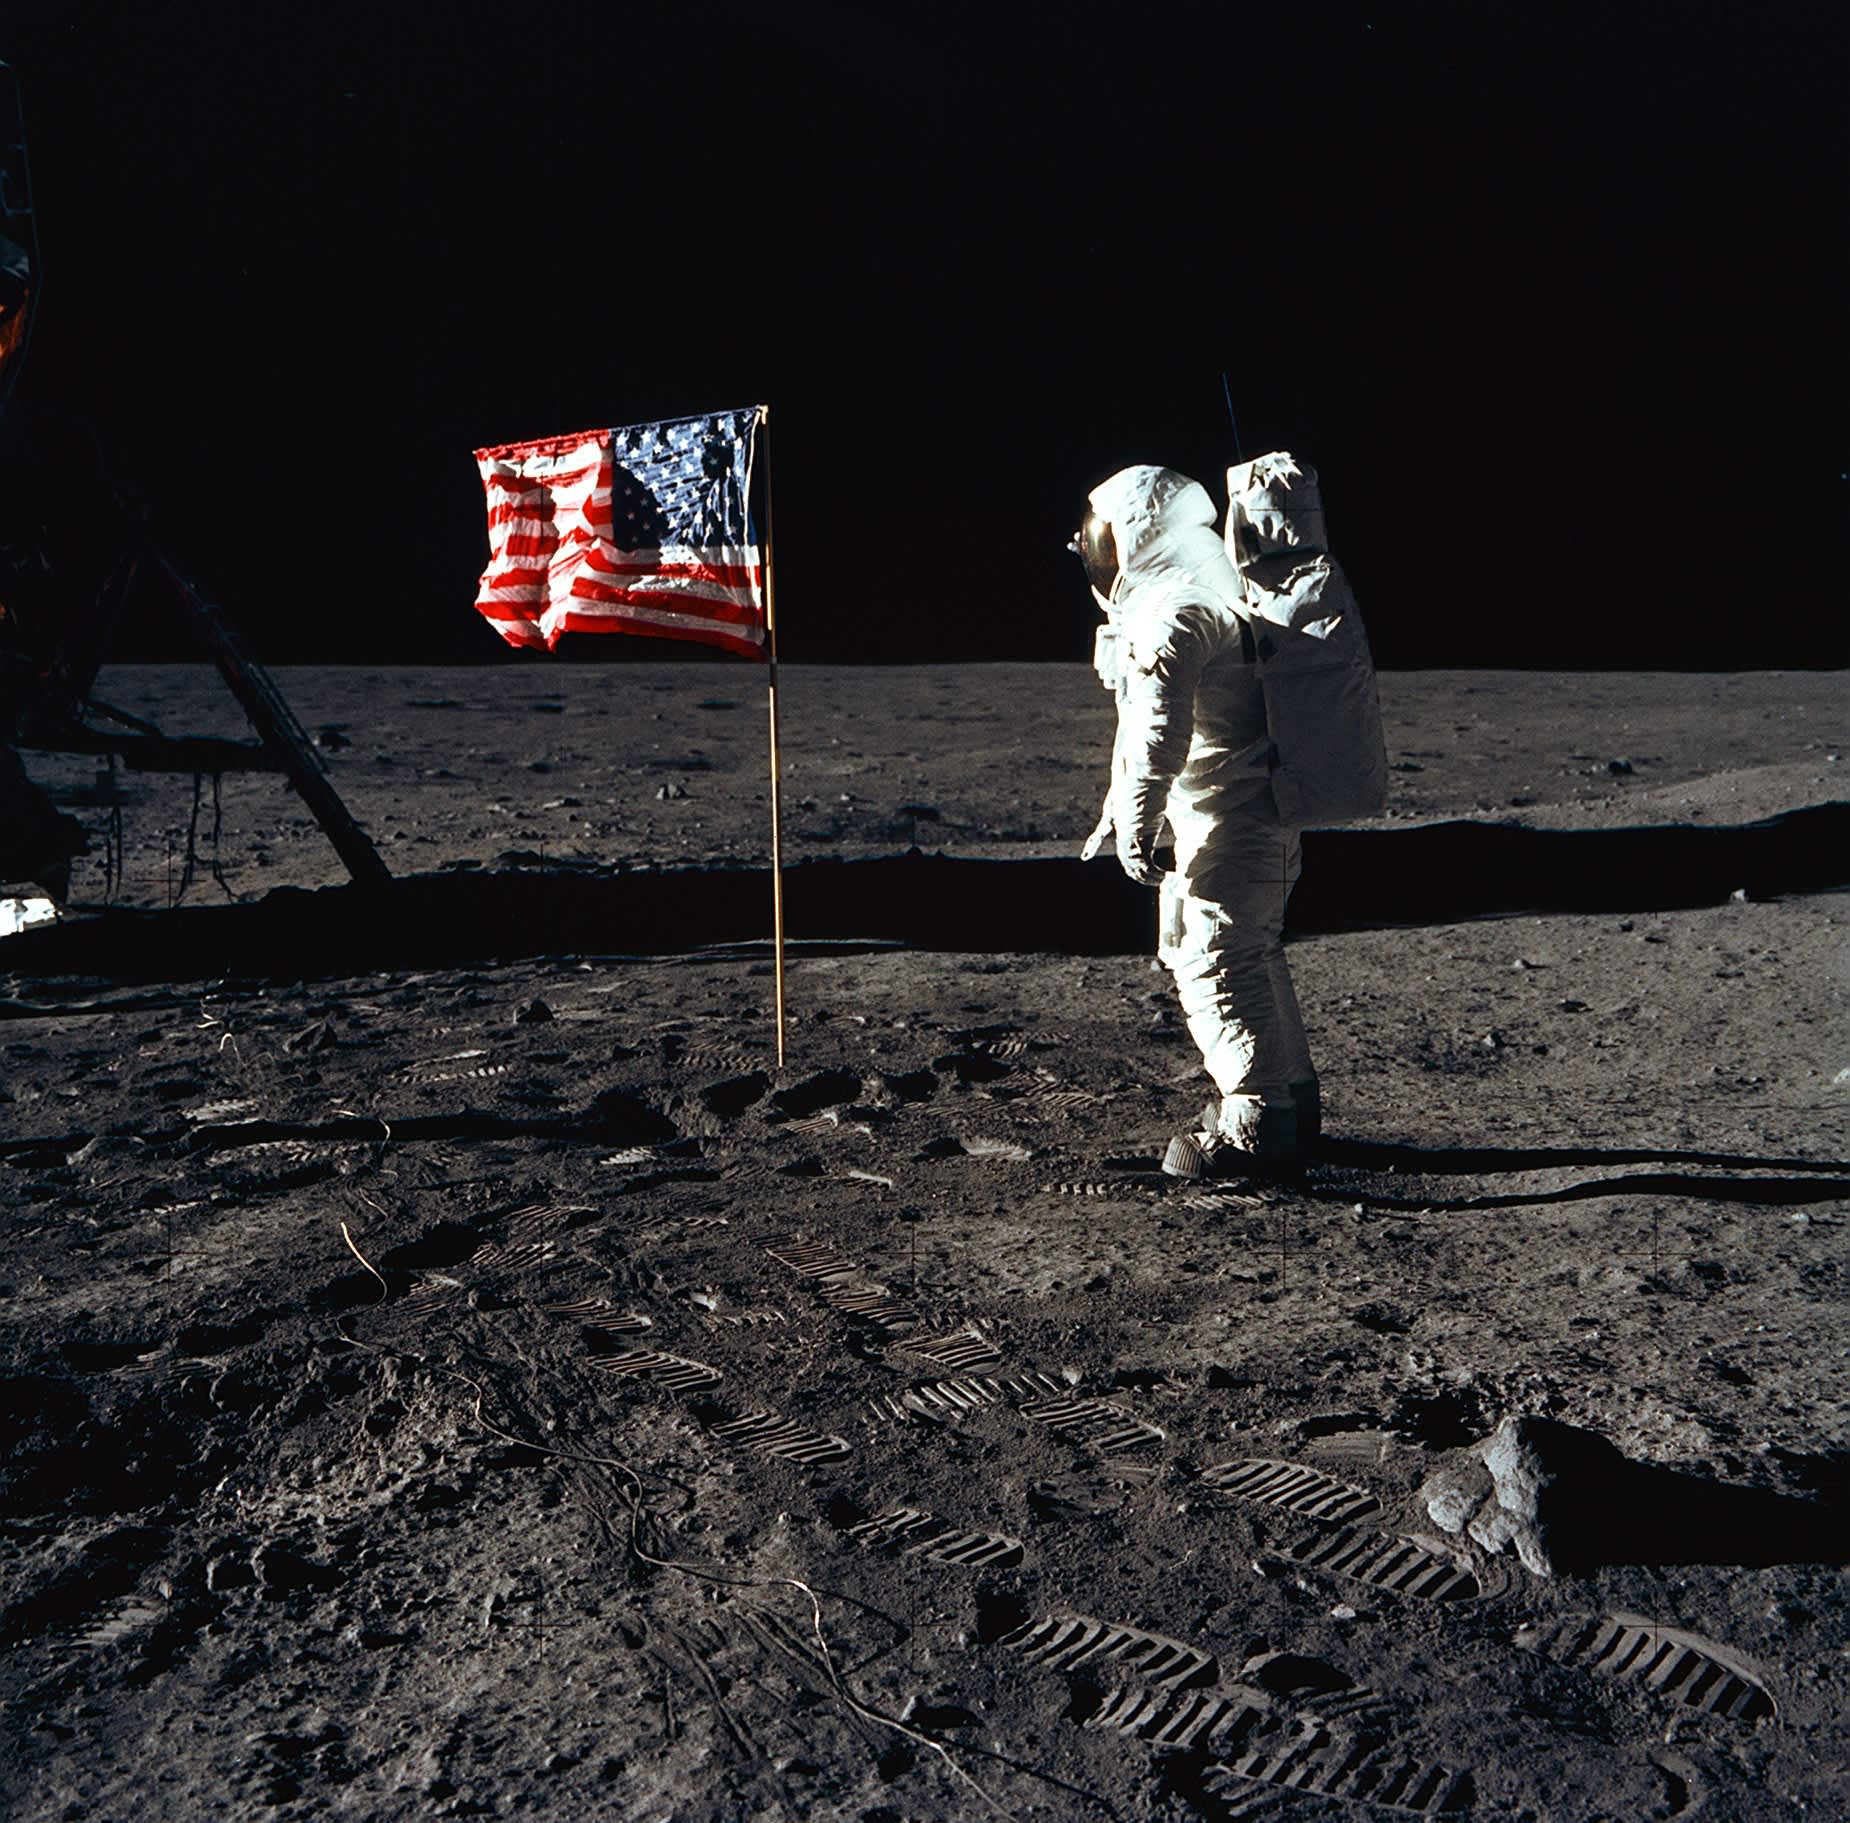 Apollo 11 moon-landing tapes sell at Sotheby's for $1.8 million